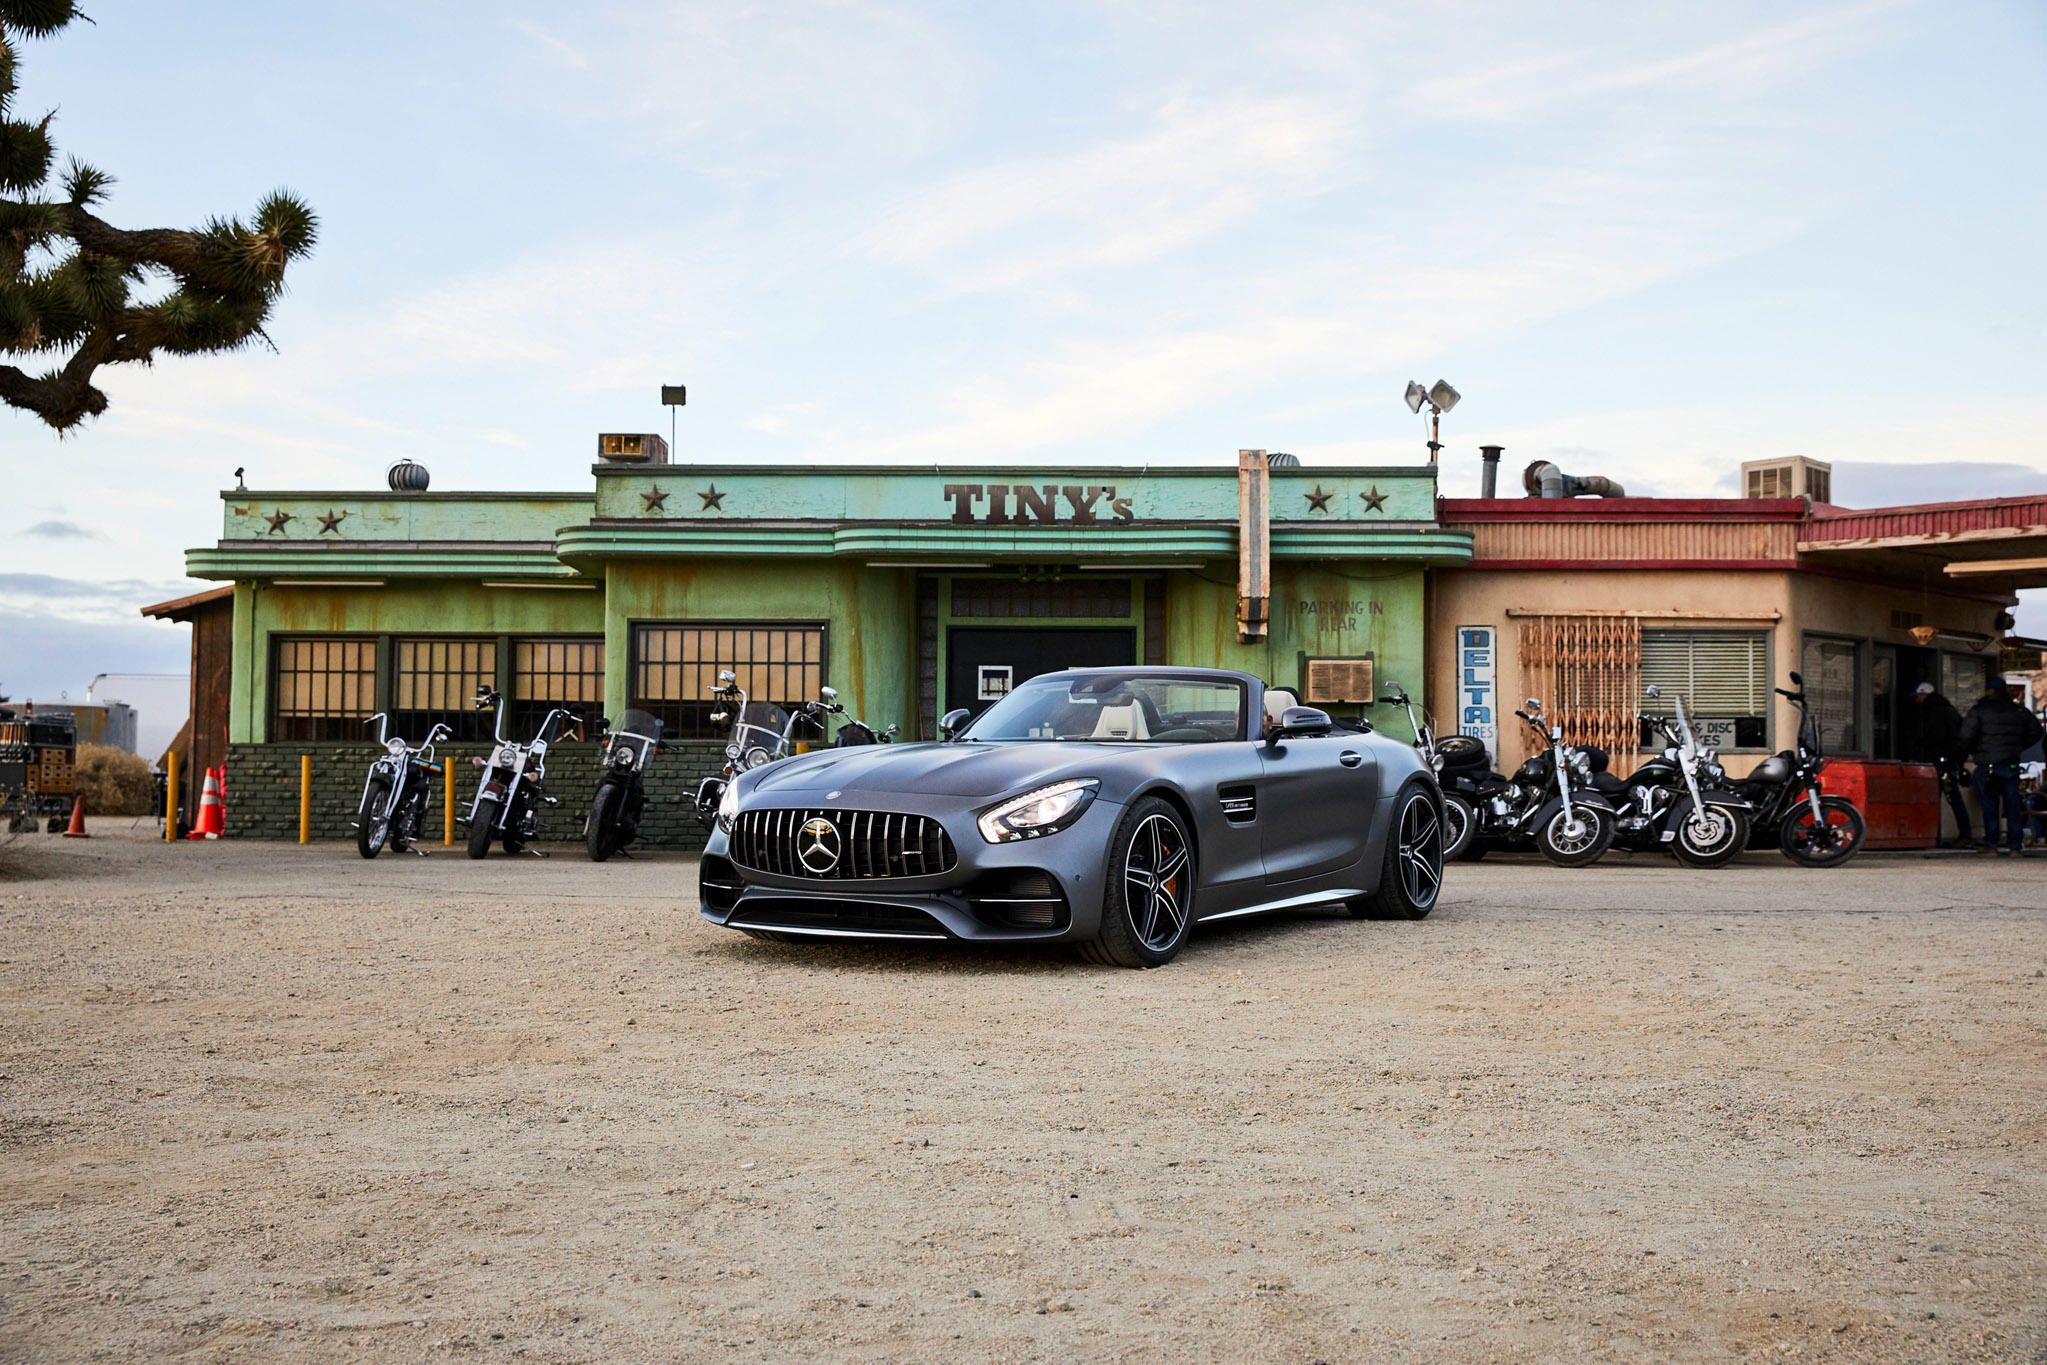 Mercedes Amg Gt Roadster Stars In Super Bowl Commercial Gallery Via Motor Trend News Iphone App Mercedes Amg Mercedes Amg